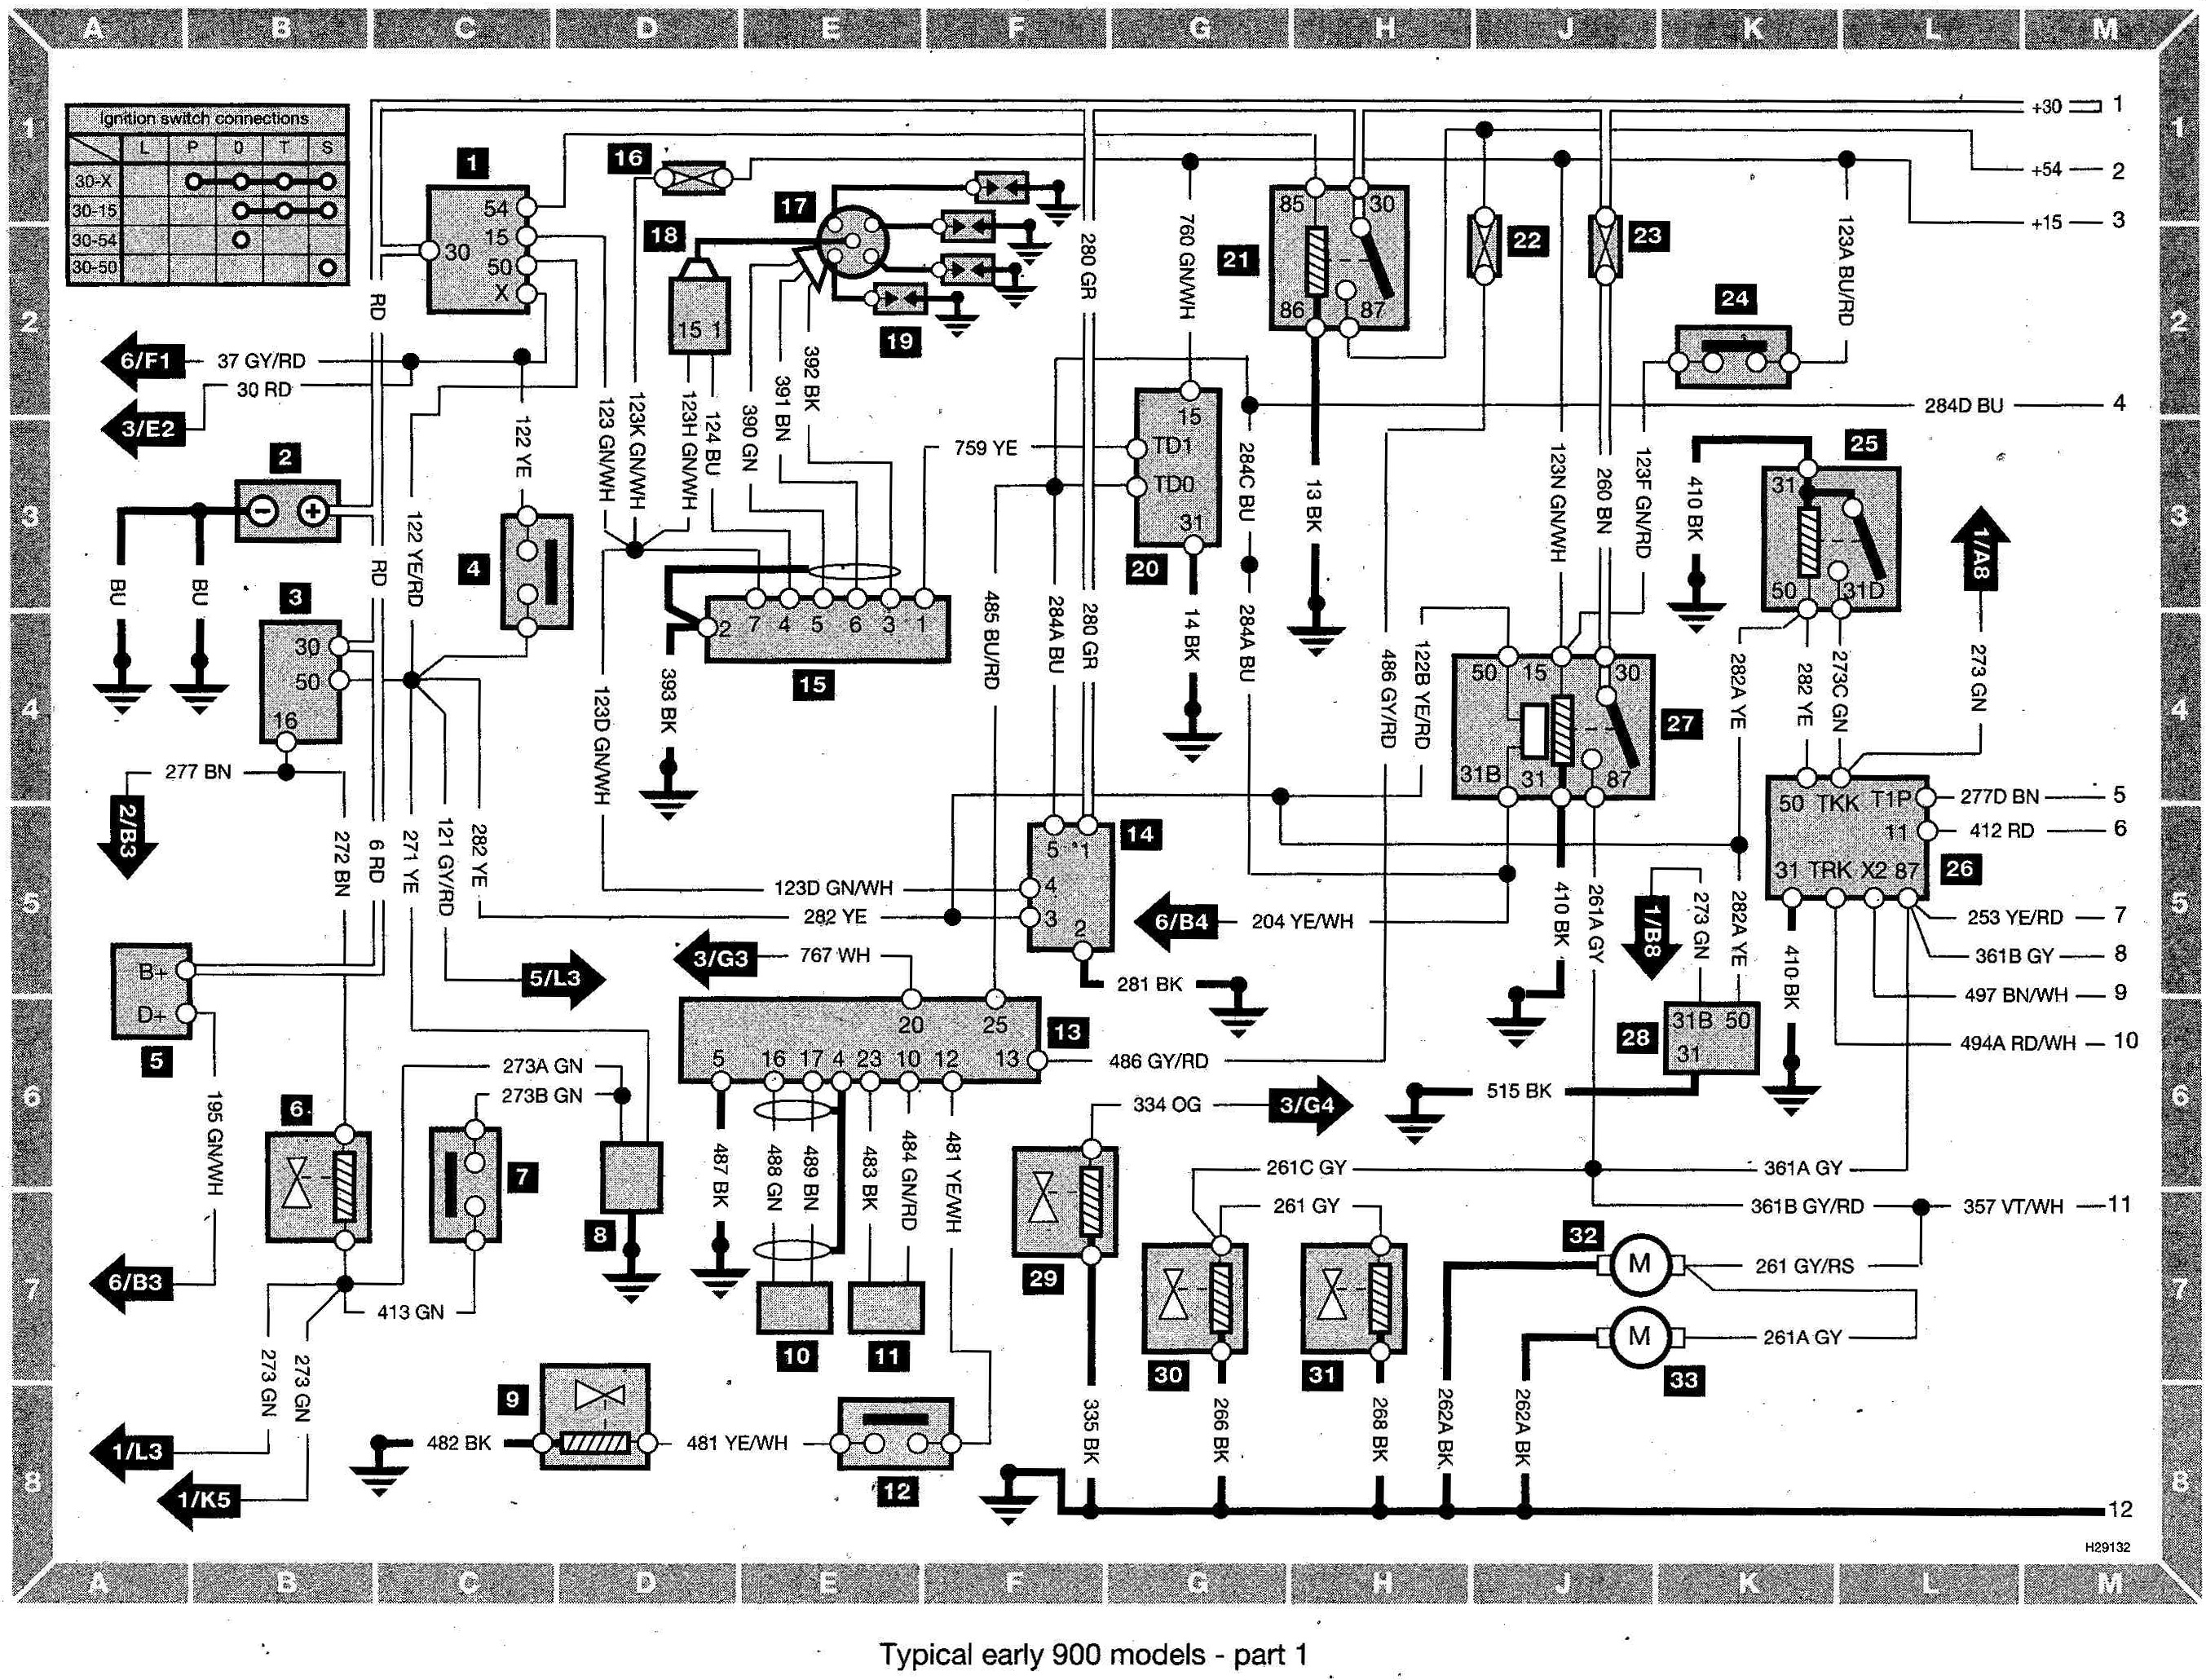 saab wire diagram simple wiring diagram rh david huggett co uk 2003 Saab 9  3 Wiring Diagram Saab 900 Wiring Diagram